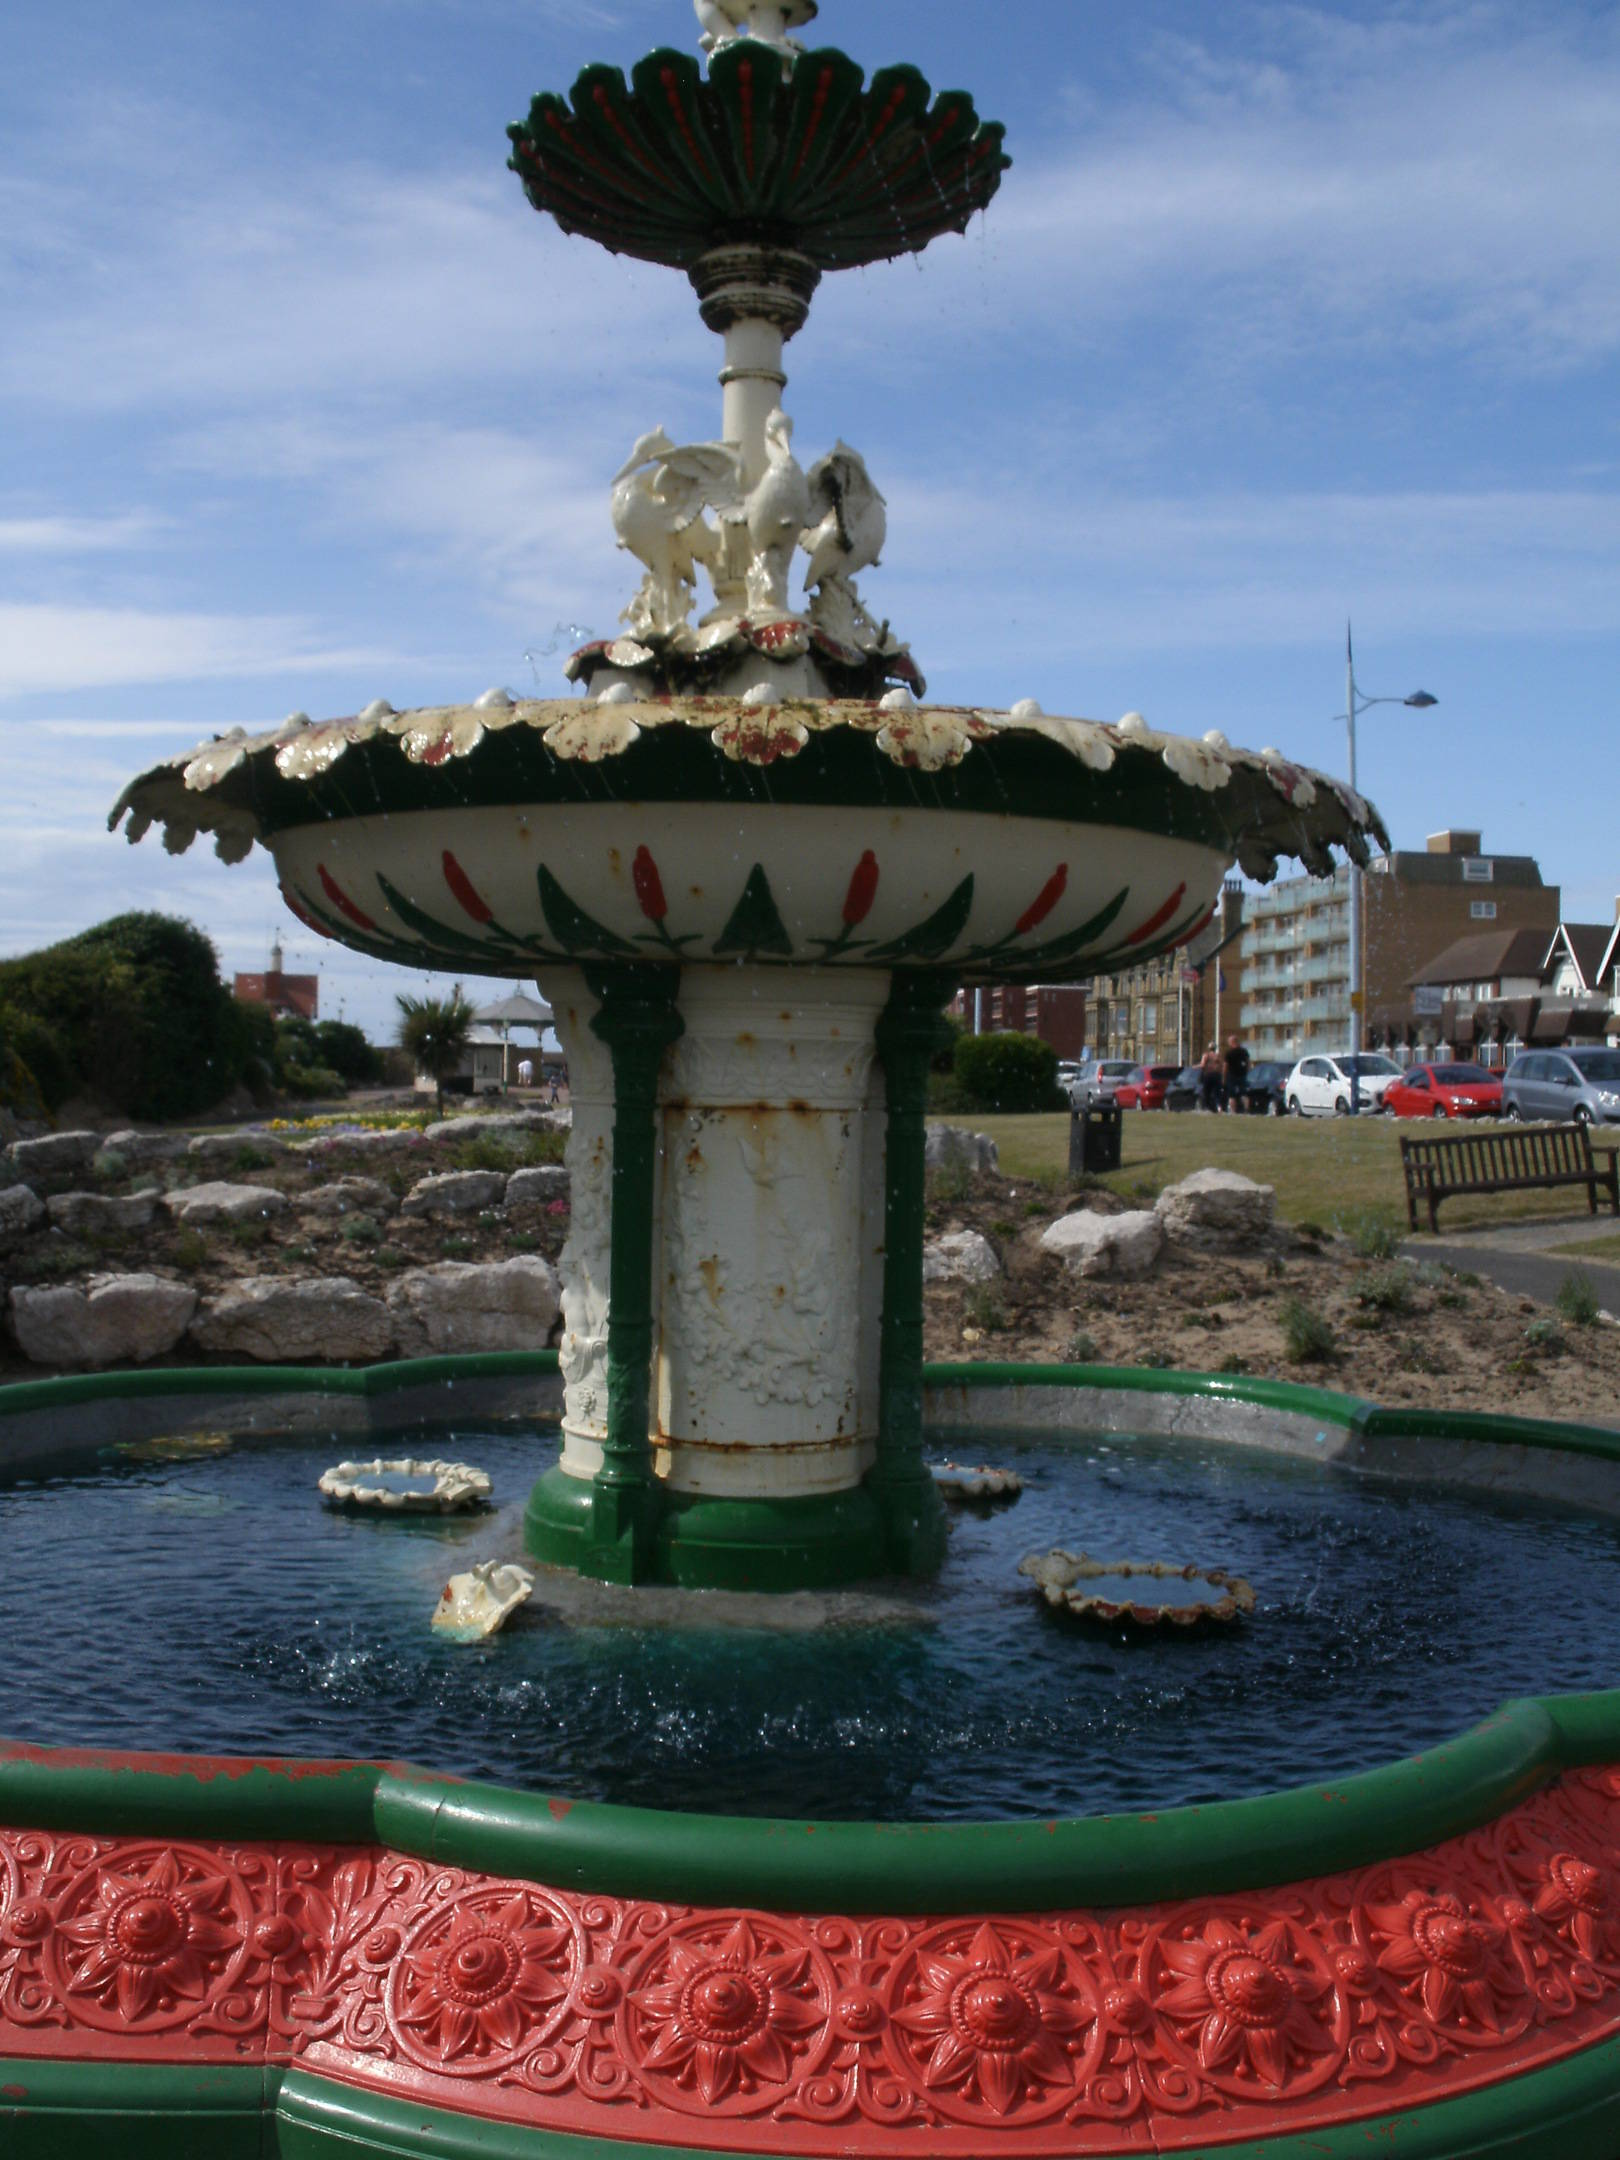 This is St Ann's just outside Blackpool with one of its many colourful fountains.